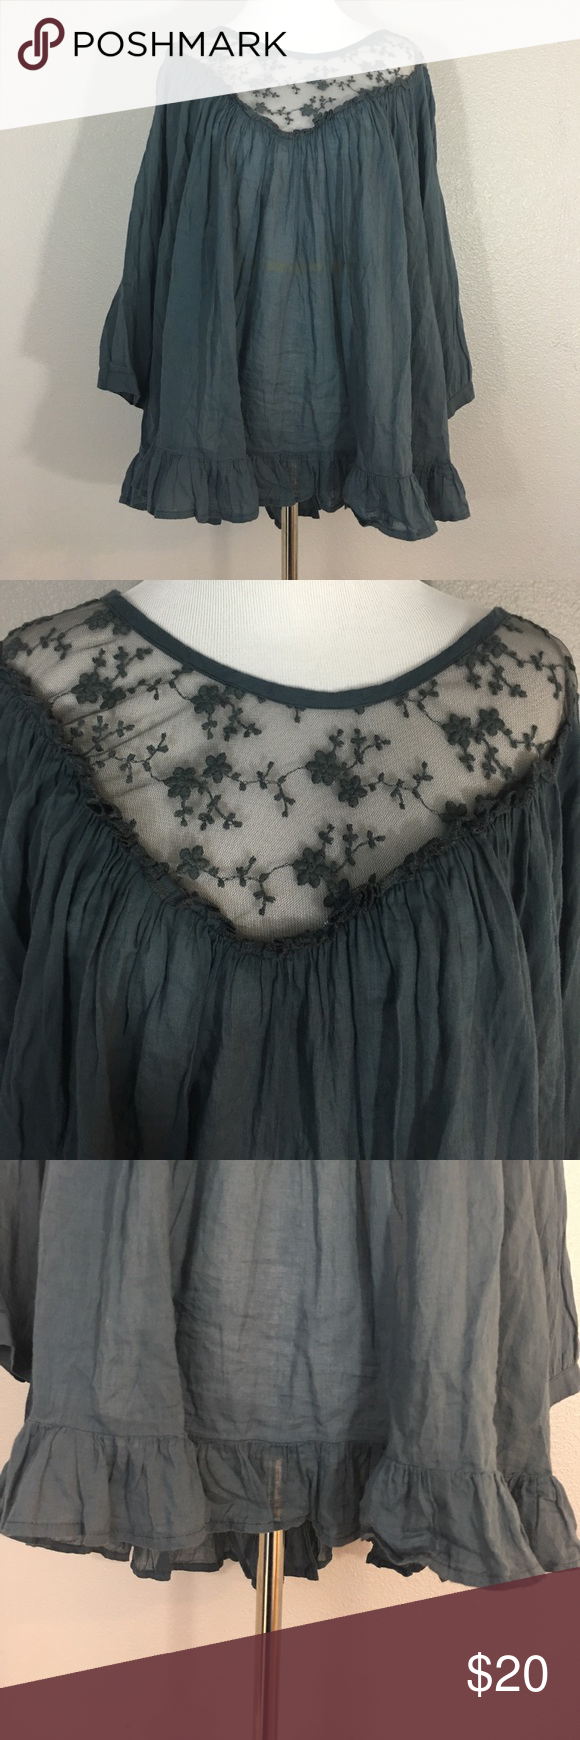 """Women's Cost Plus World Market boho Blouse s/m Women's Cost Plus World Market boho hippie Blouse with lace trim at shoulder and back. Buttons at the back. Size small/medium. 100% Cotton but dry clean only due to the lace detail. Measurements laying flat- armpit to armpit: 20"""" nape to hem: 24.5"""" cost plus world market Tops Blouses"""